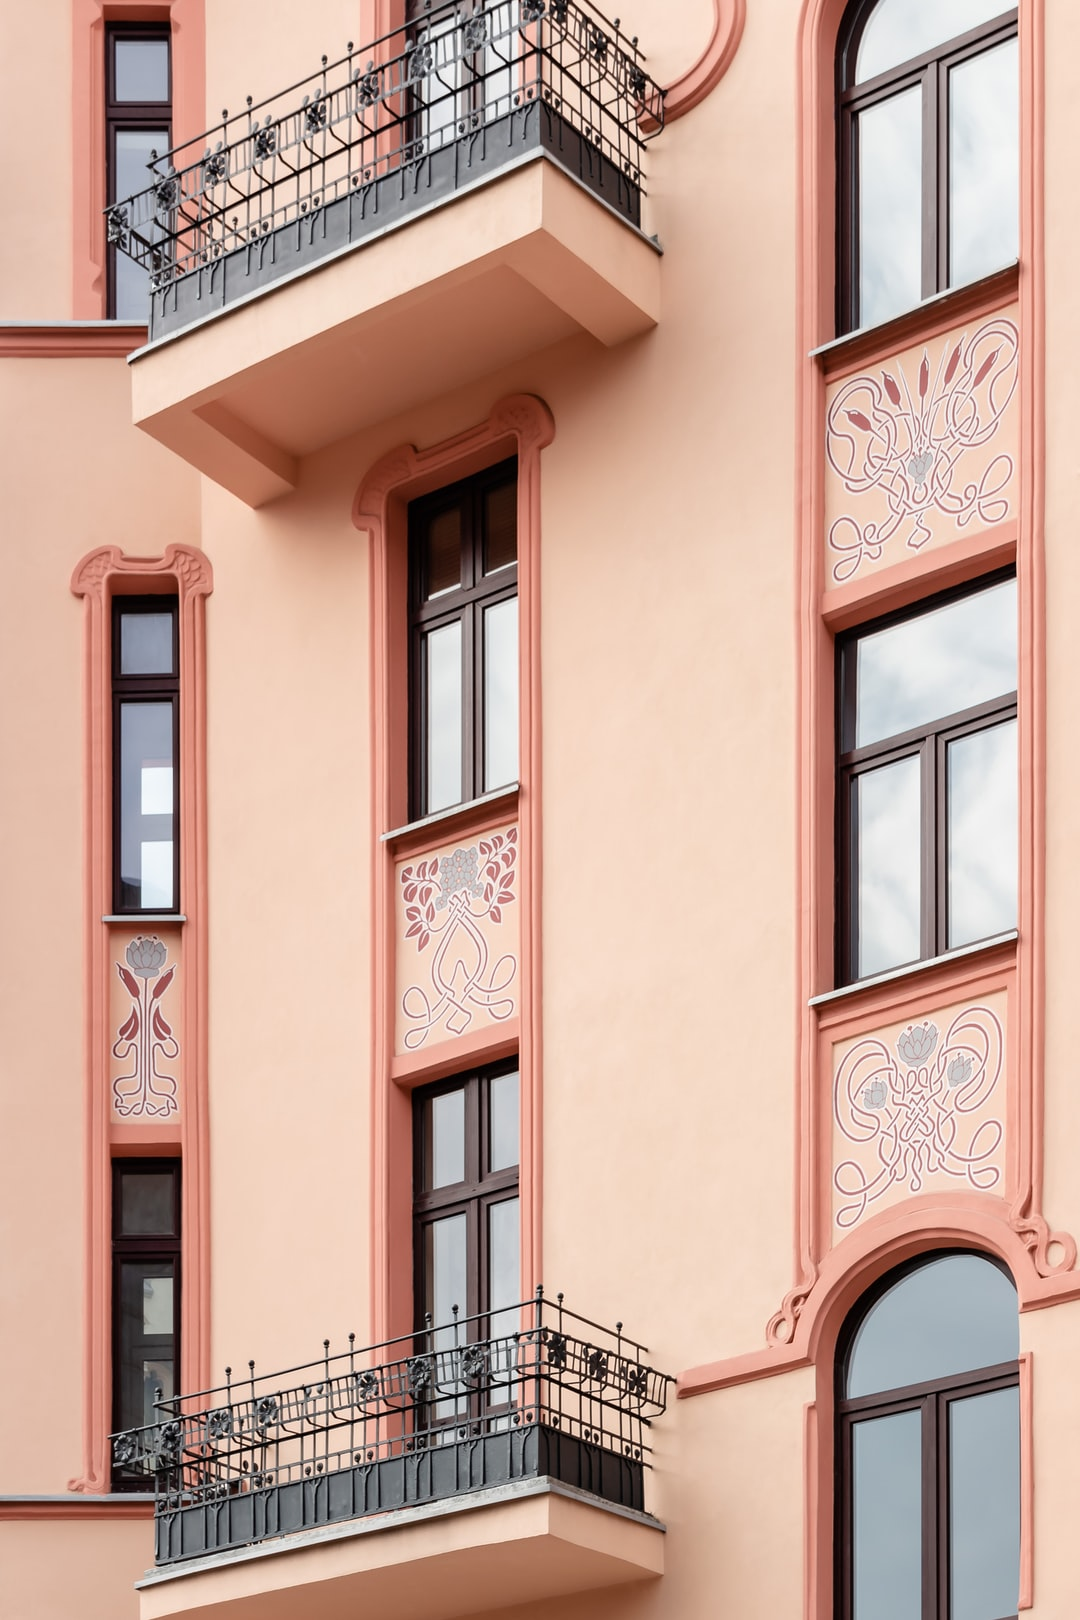 I found this nice and clean facade of a tenement house in Wrocław (Poland), in the center of the city. Some of them are after a renovation - like this one, some are not ;)